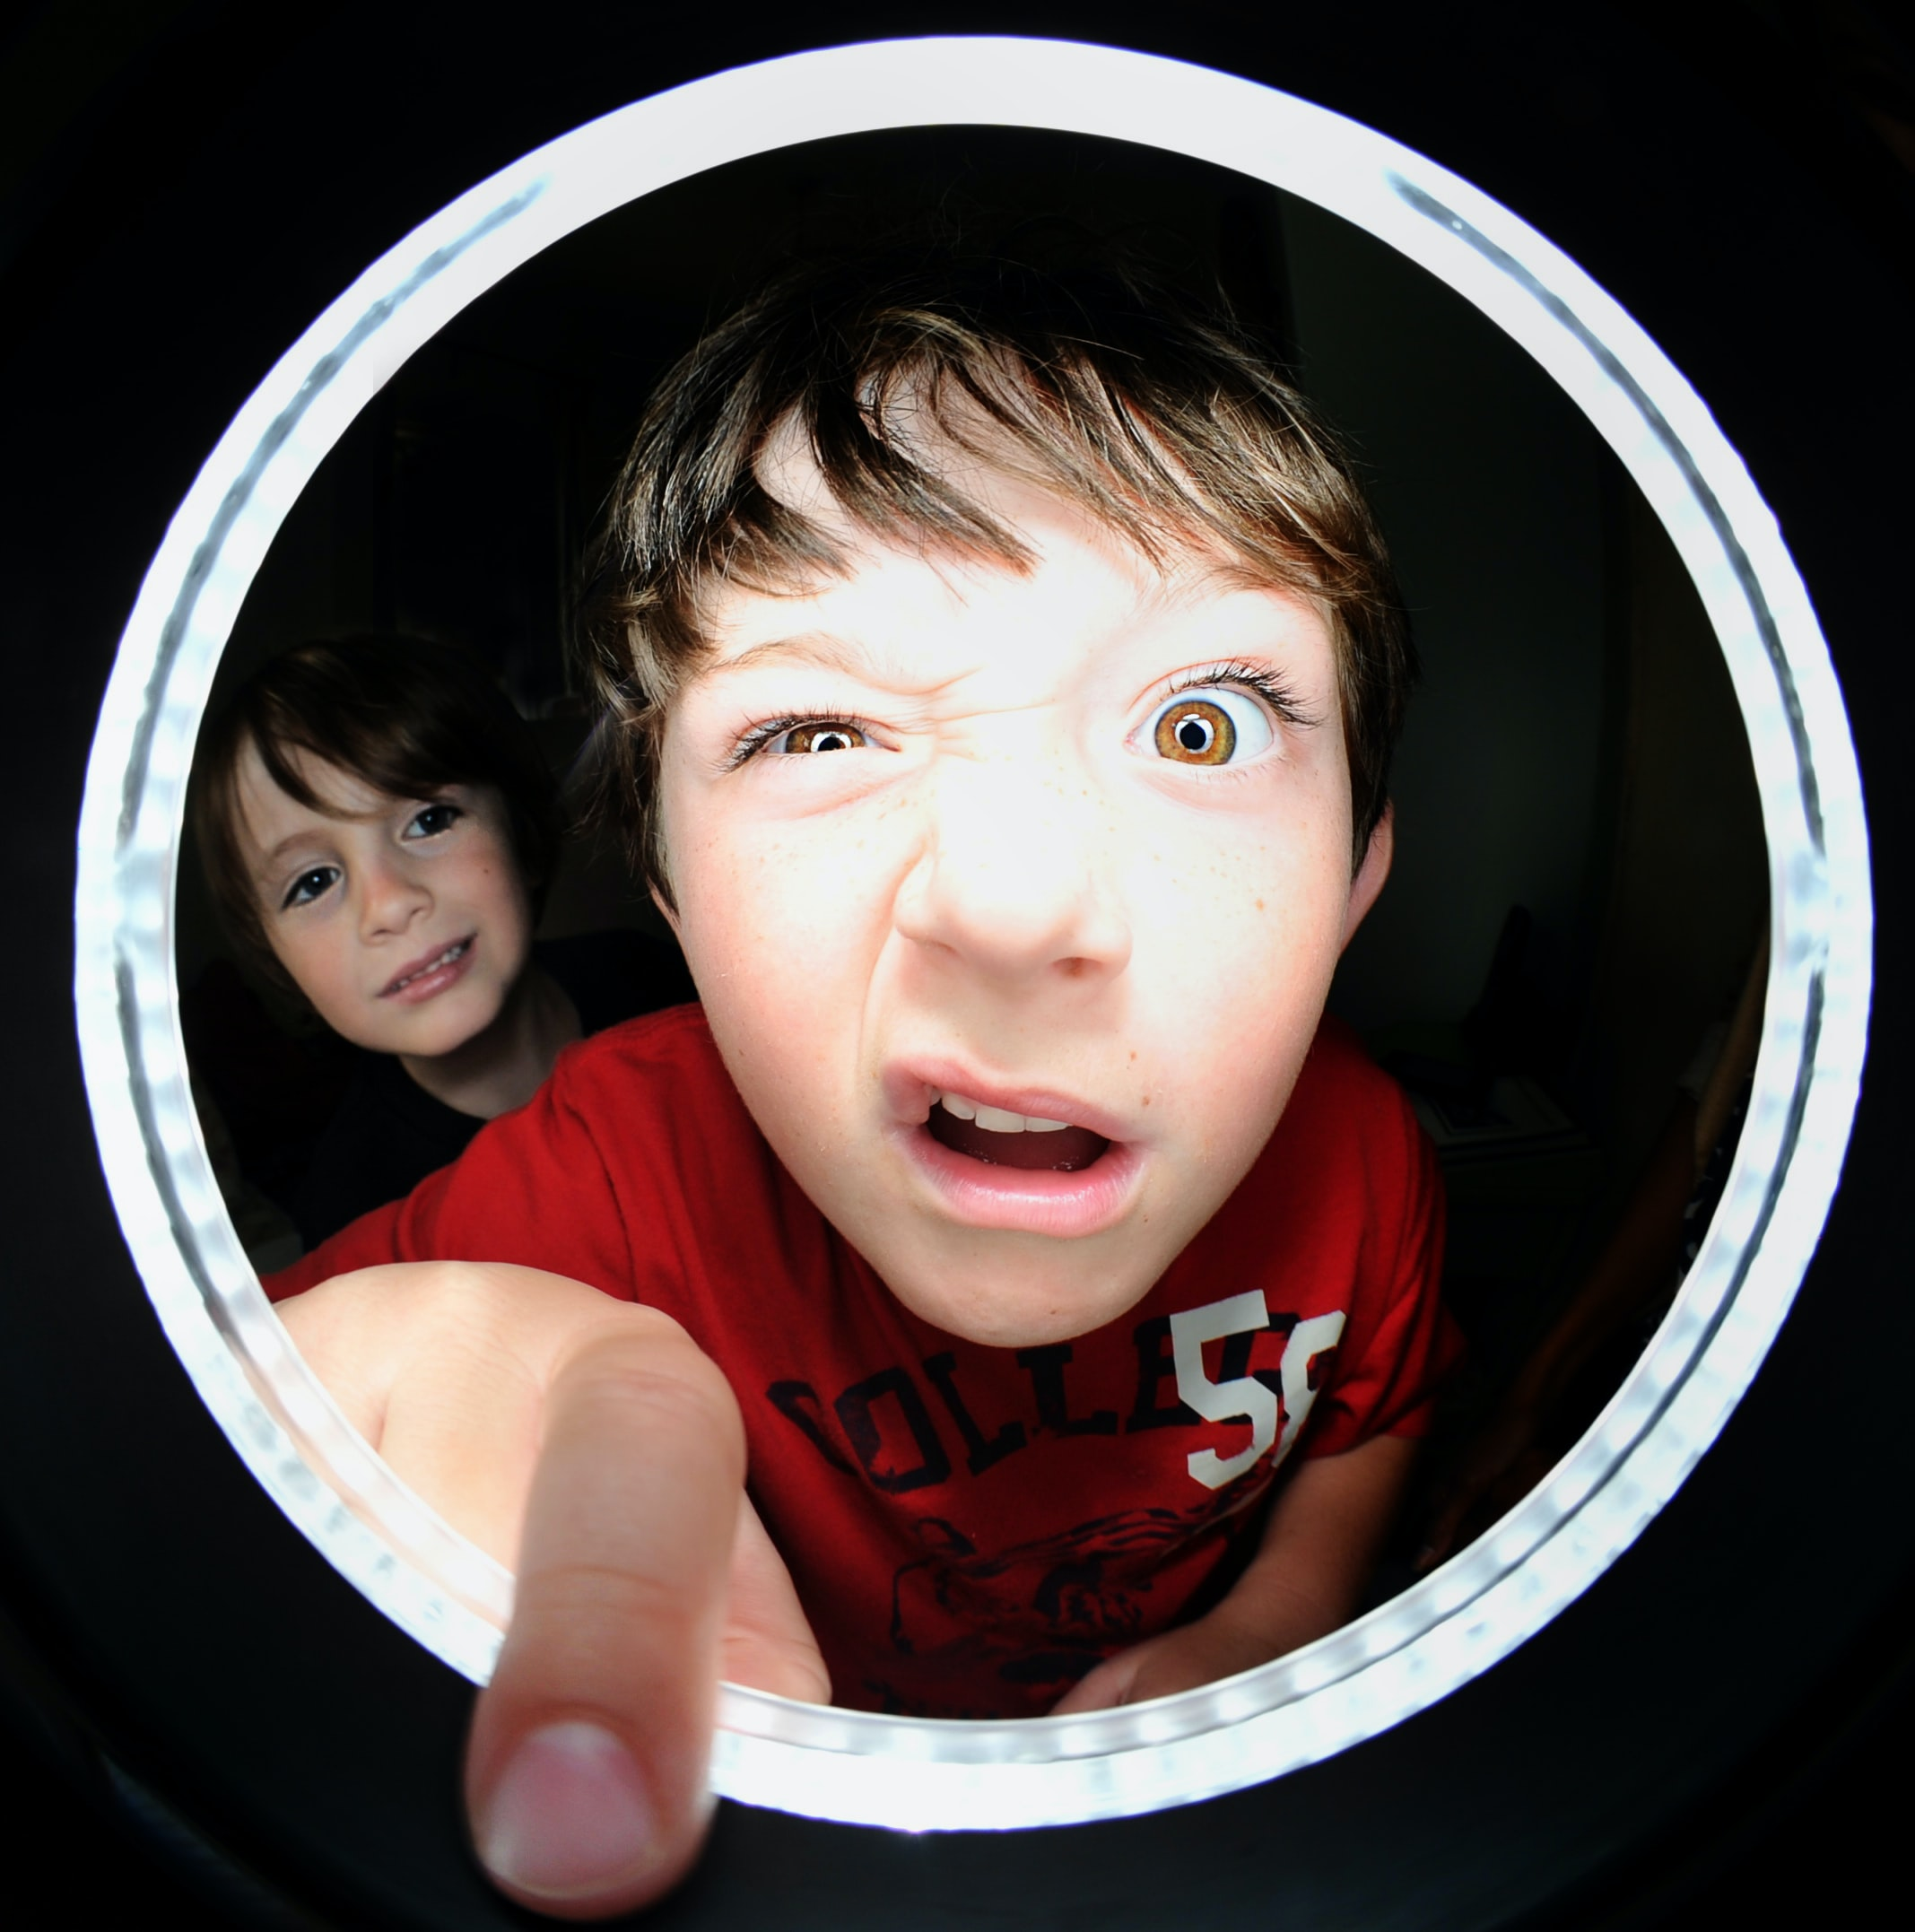 A little boy making a funny face while sticking his finger through a peephole.